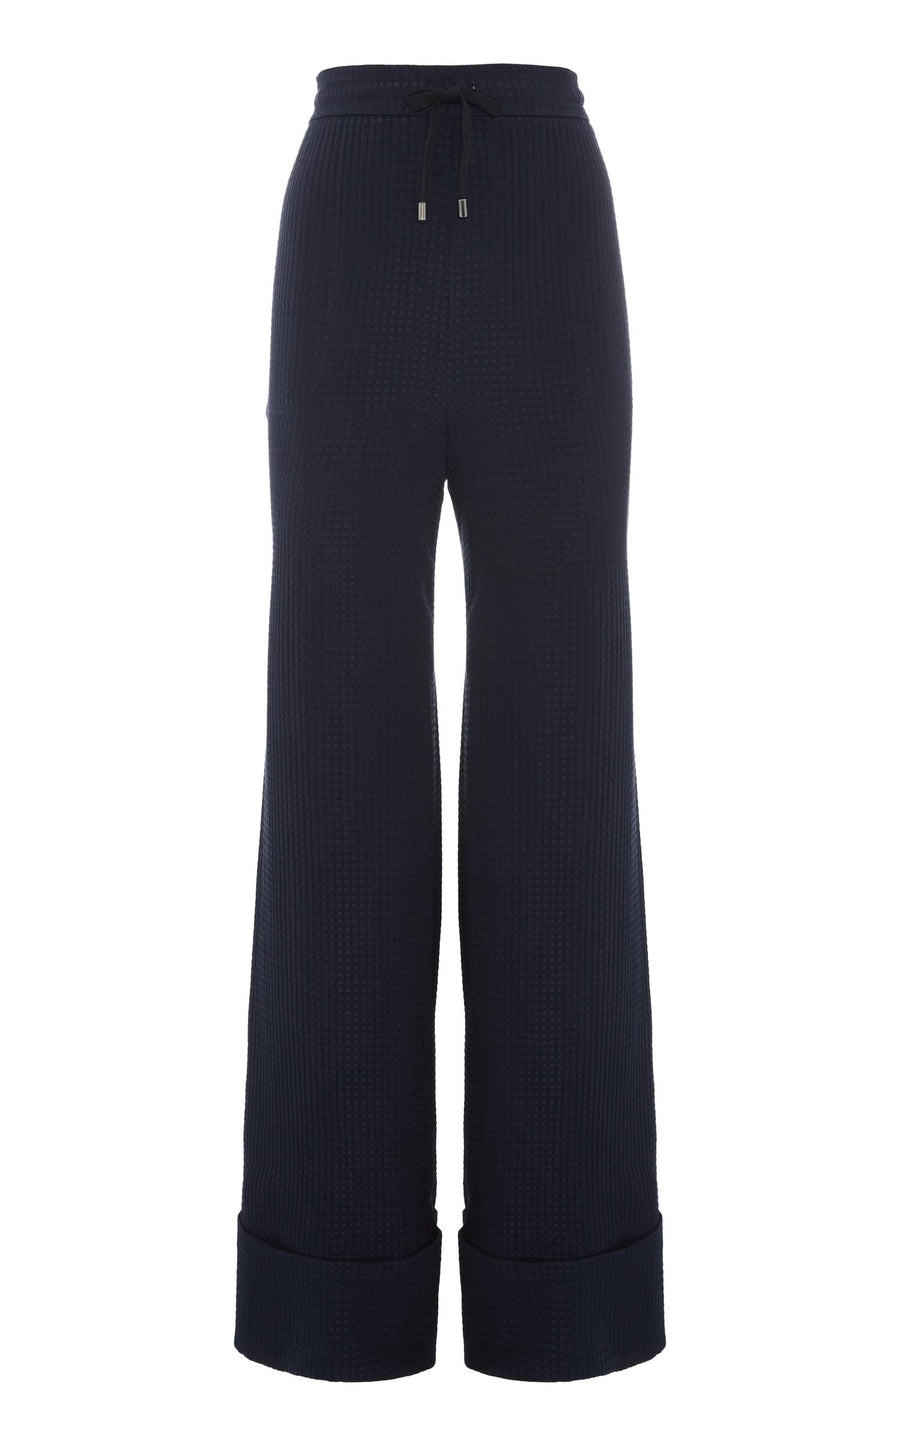 Betterton Trousers